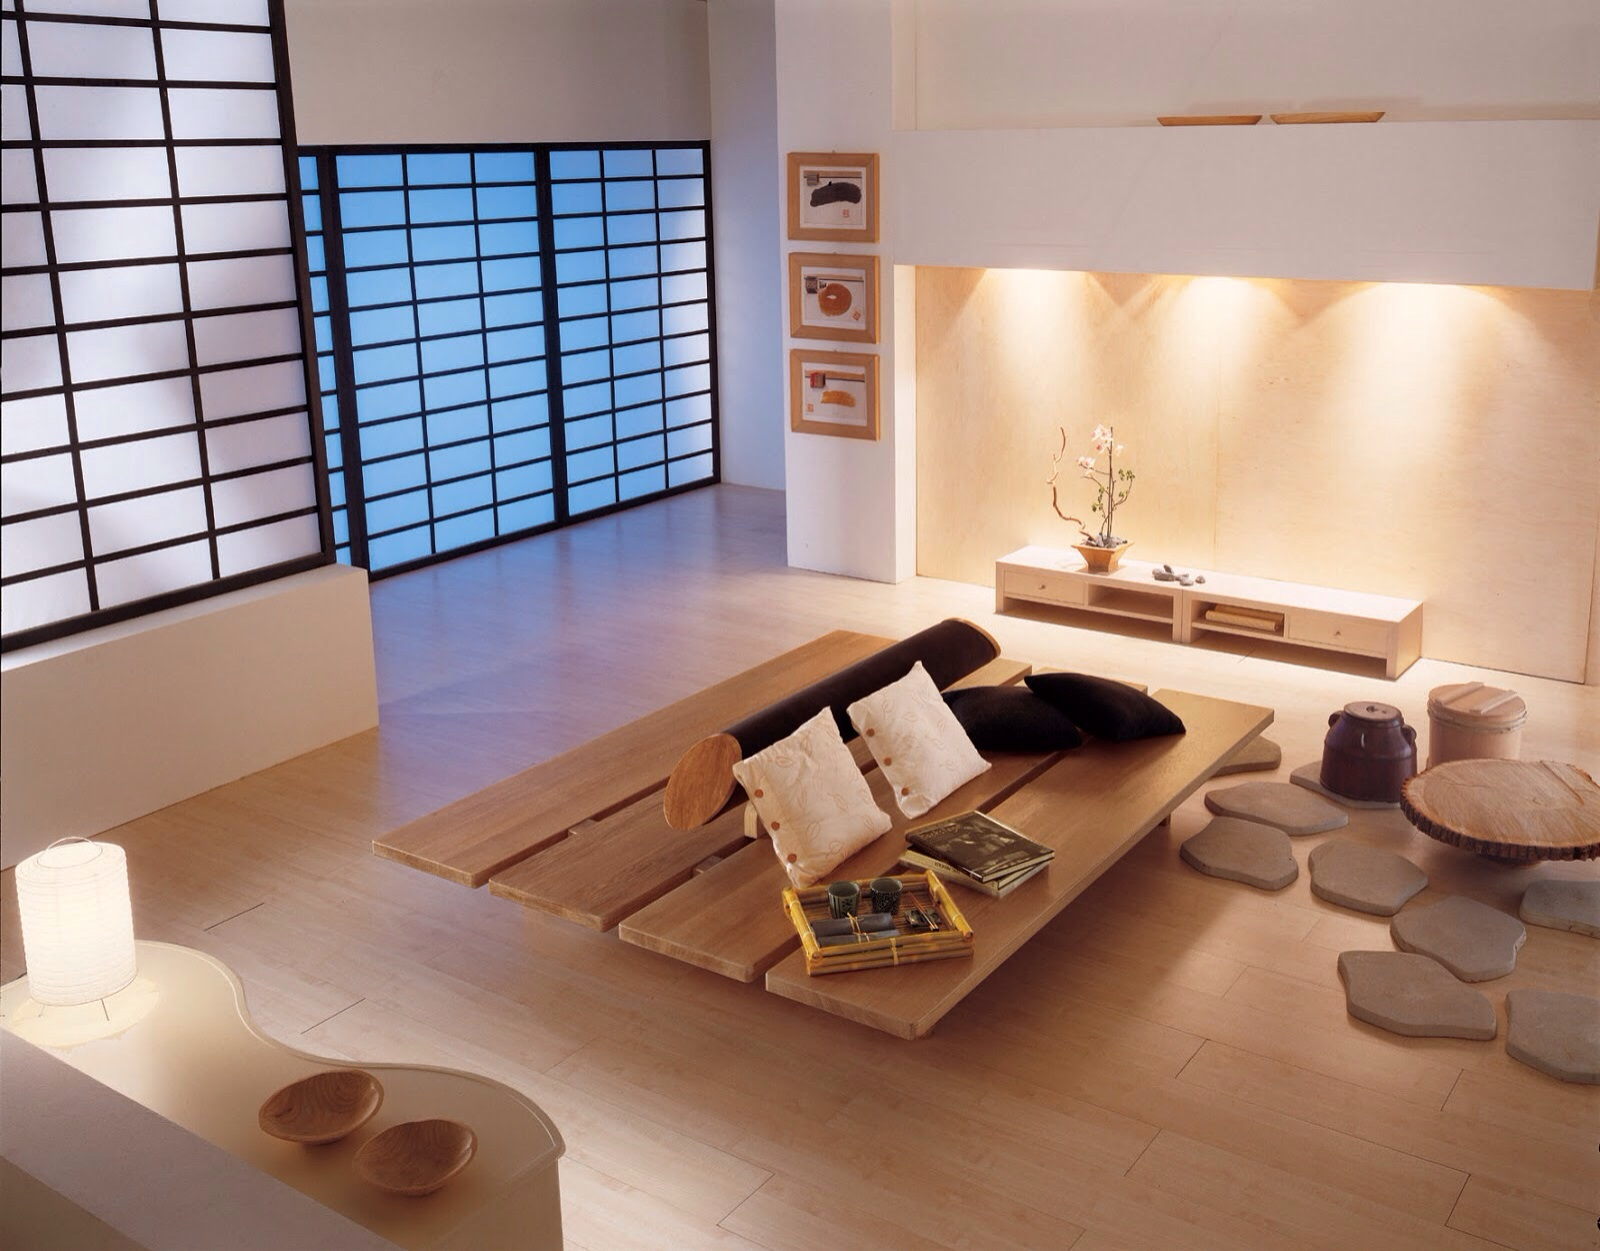 Zen Inspired Interior Design - Zen decor ideas